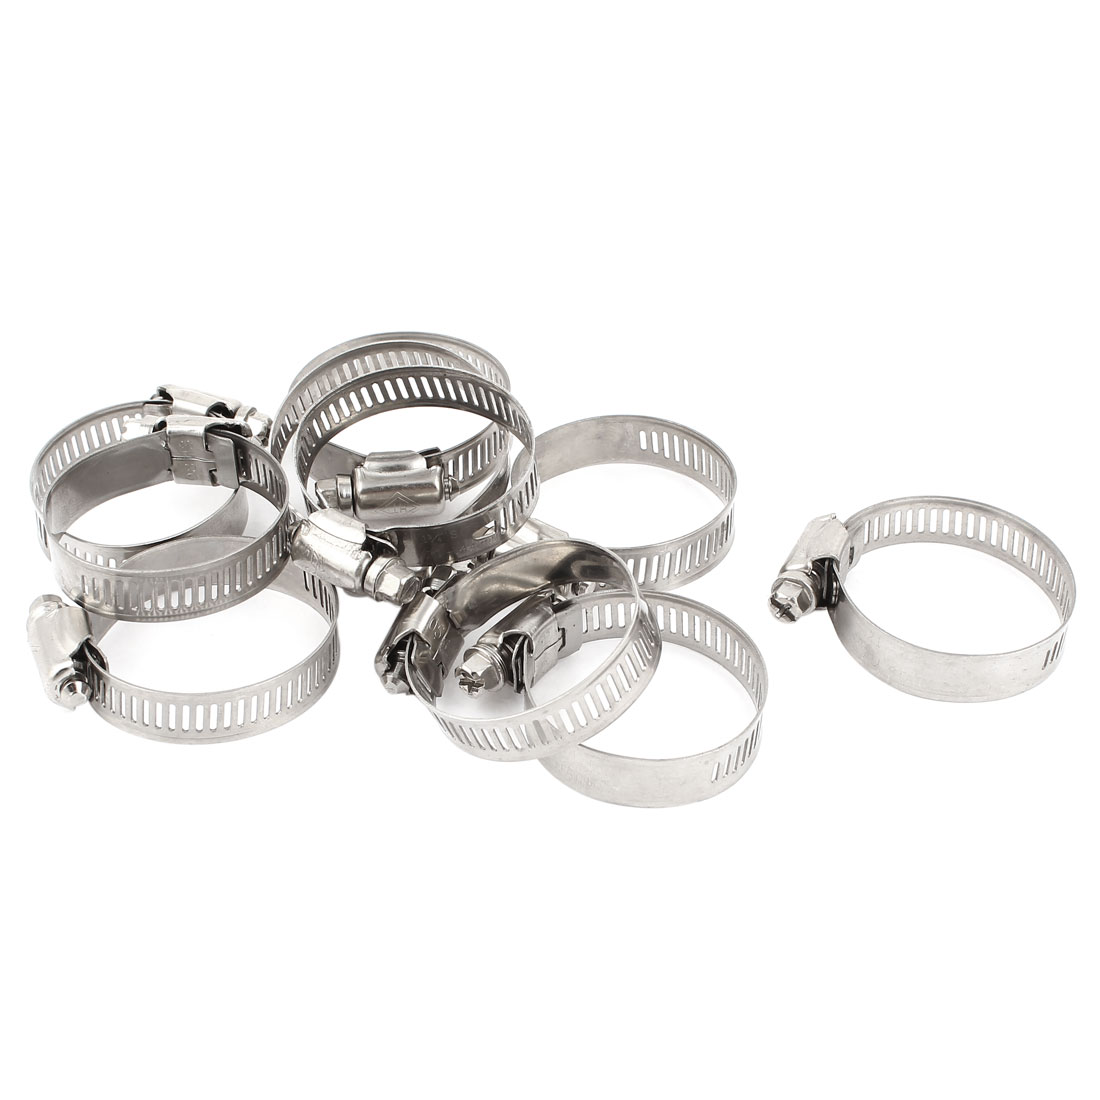 10 Pcs Stainless Steel Adjustable Pipe Hose Clamp Hoop 21-44mm